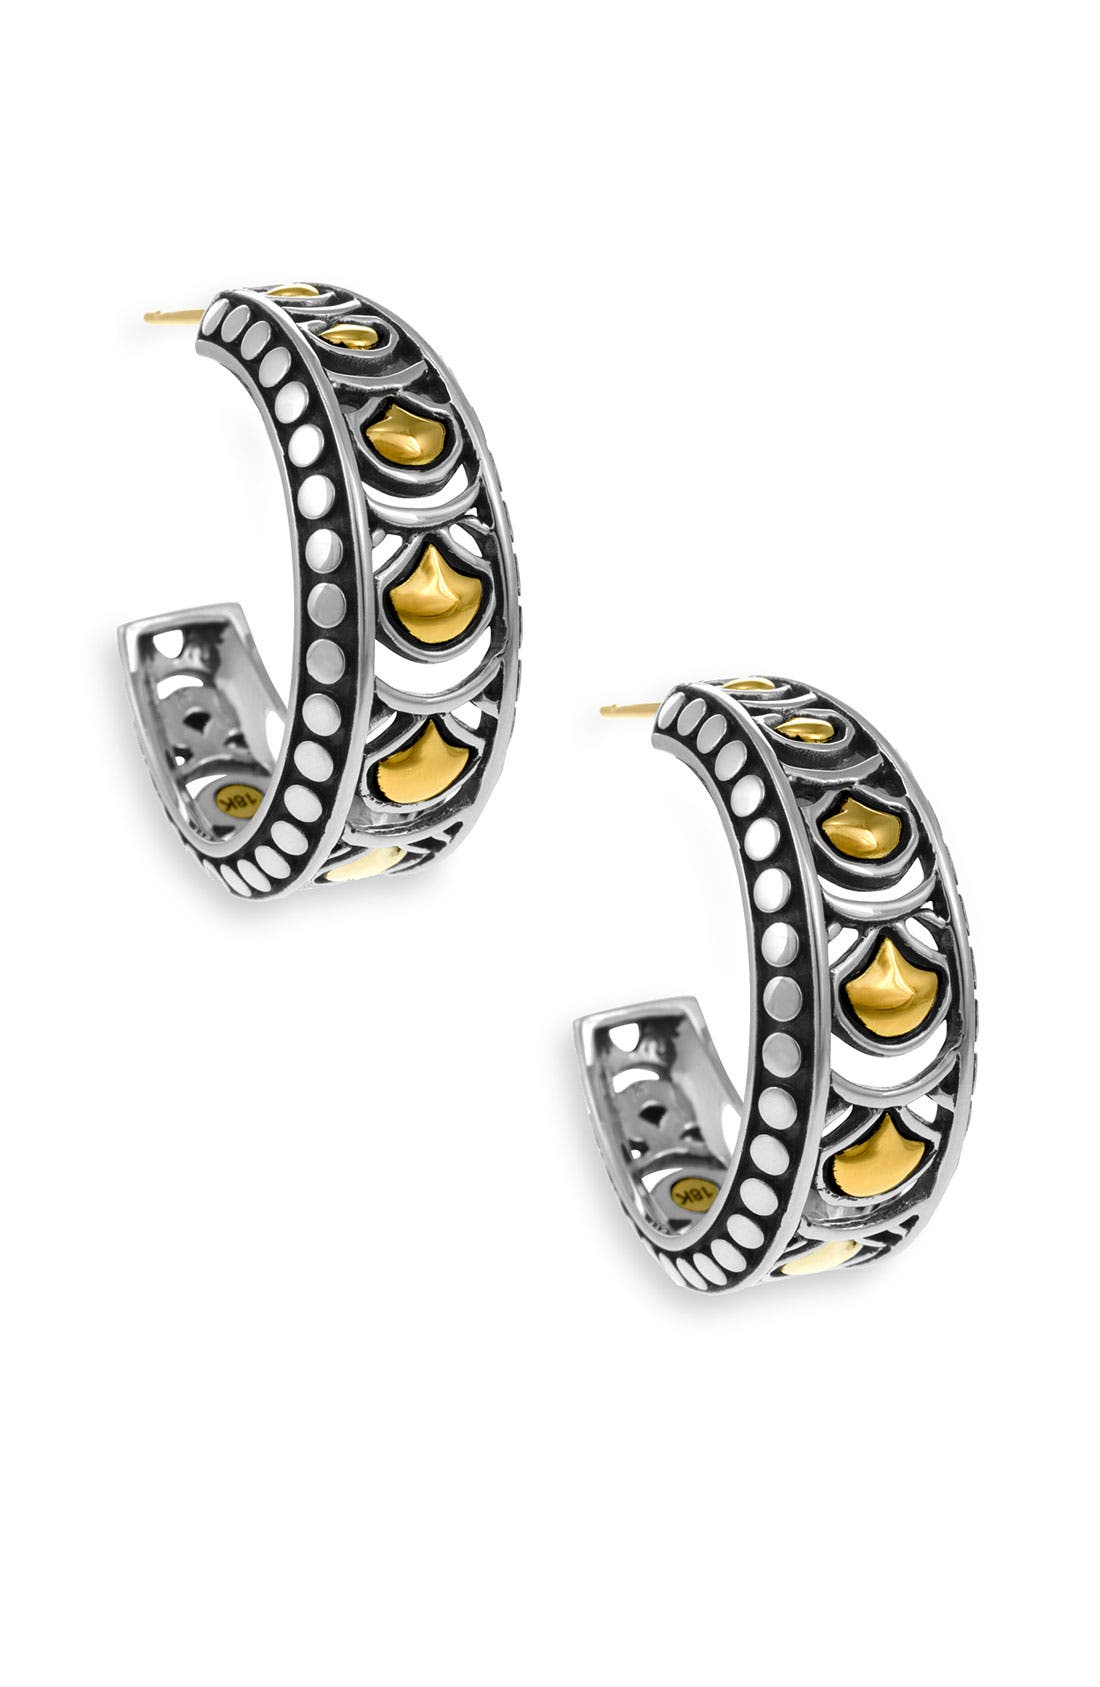 Main Image - John Hardy 'Naga Gold & Silver' Hoop Earrings